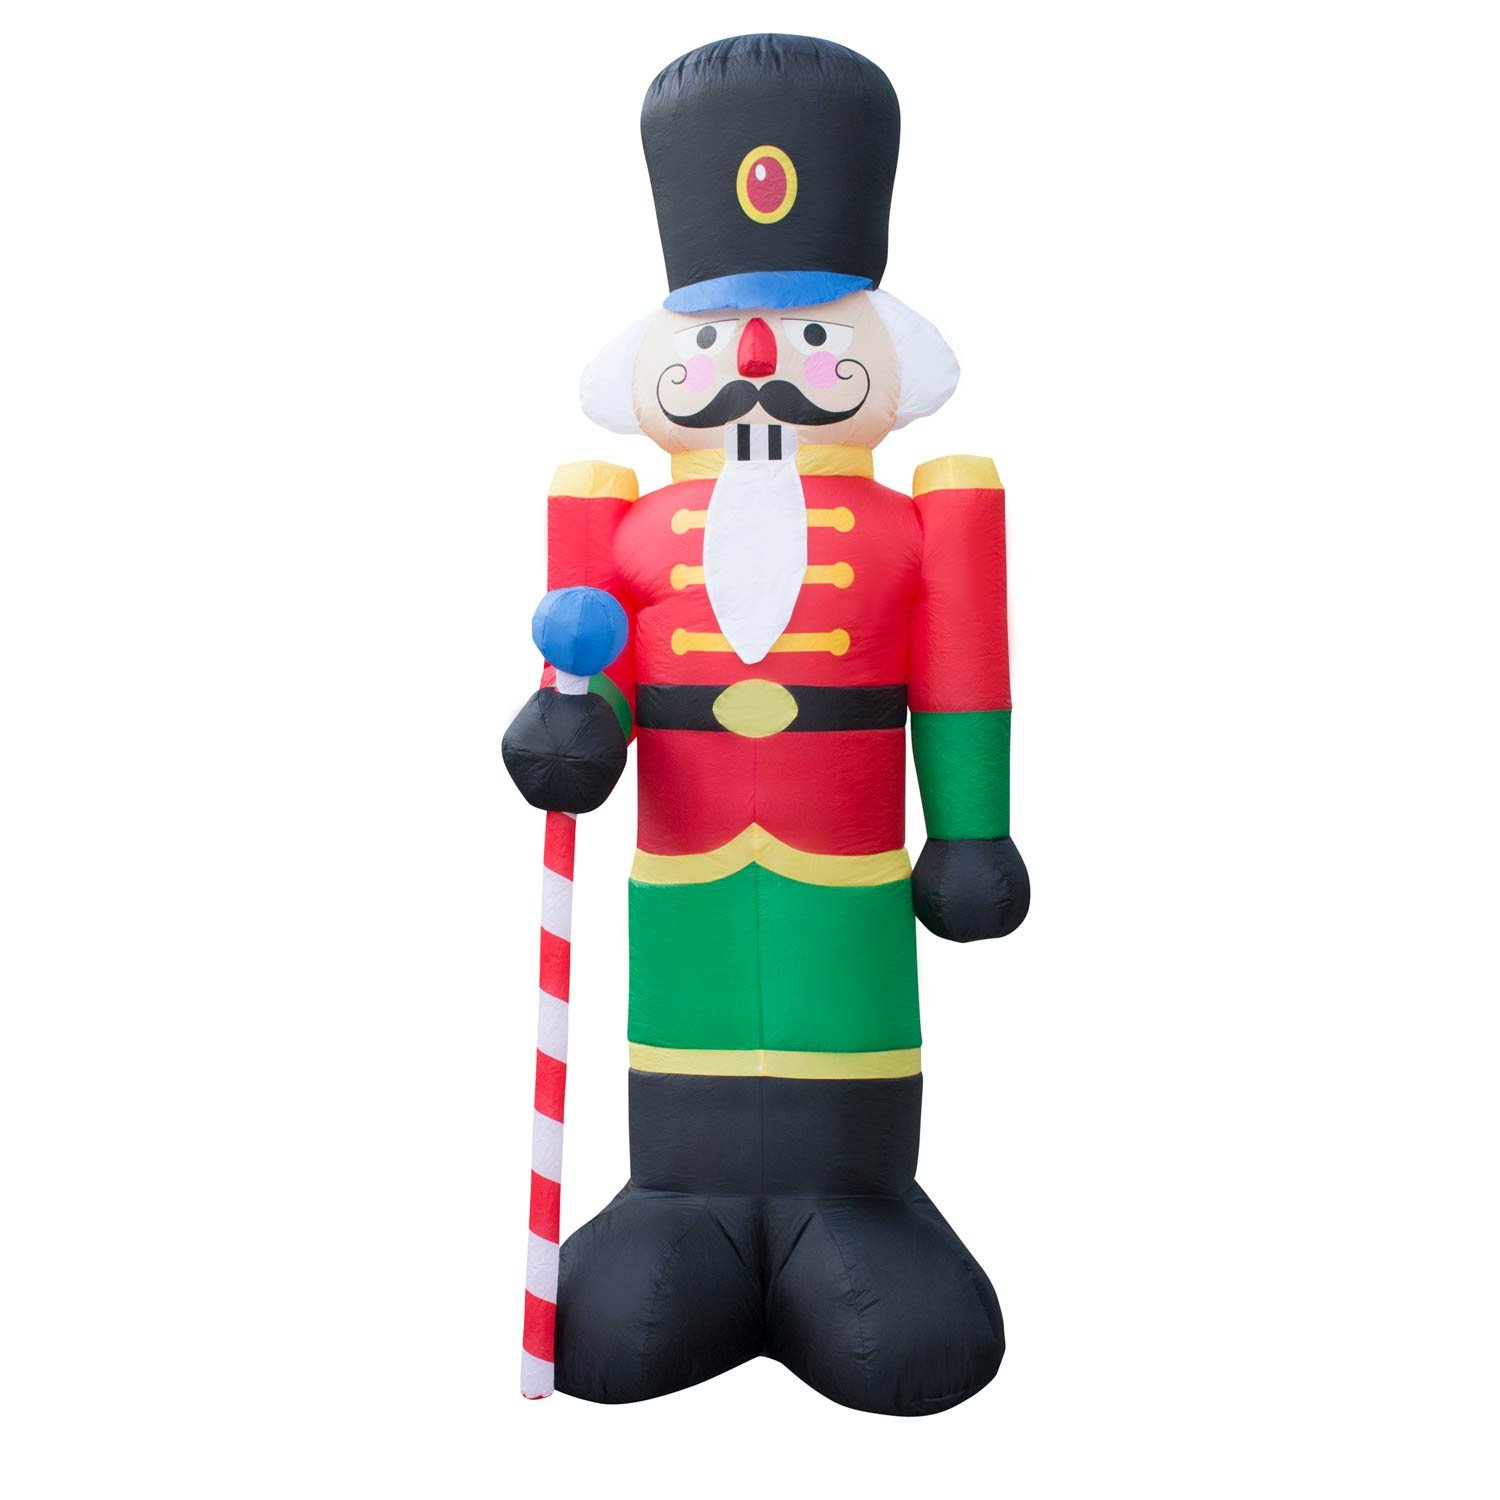 Holidayana Christmas Inflatable Giant 8 Ft Nutcracker Christmas Inflatable Featuring Lighted Interior//Airblown Inflatable Christmas Decoration With Built In Fan And Anchor Ropes